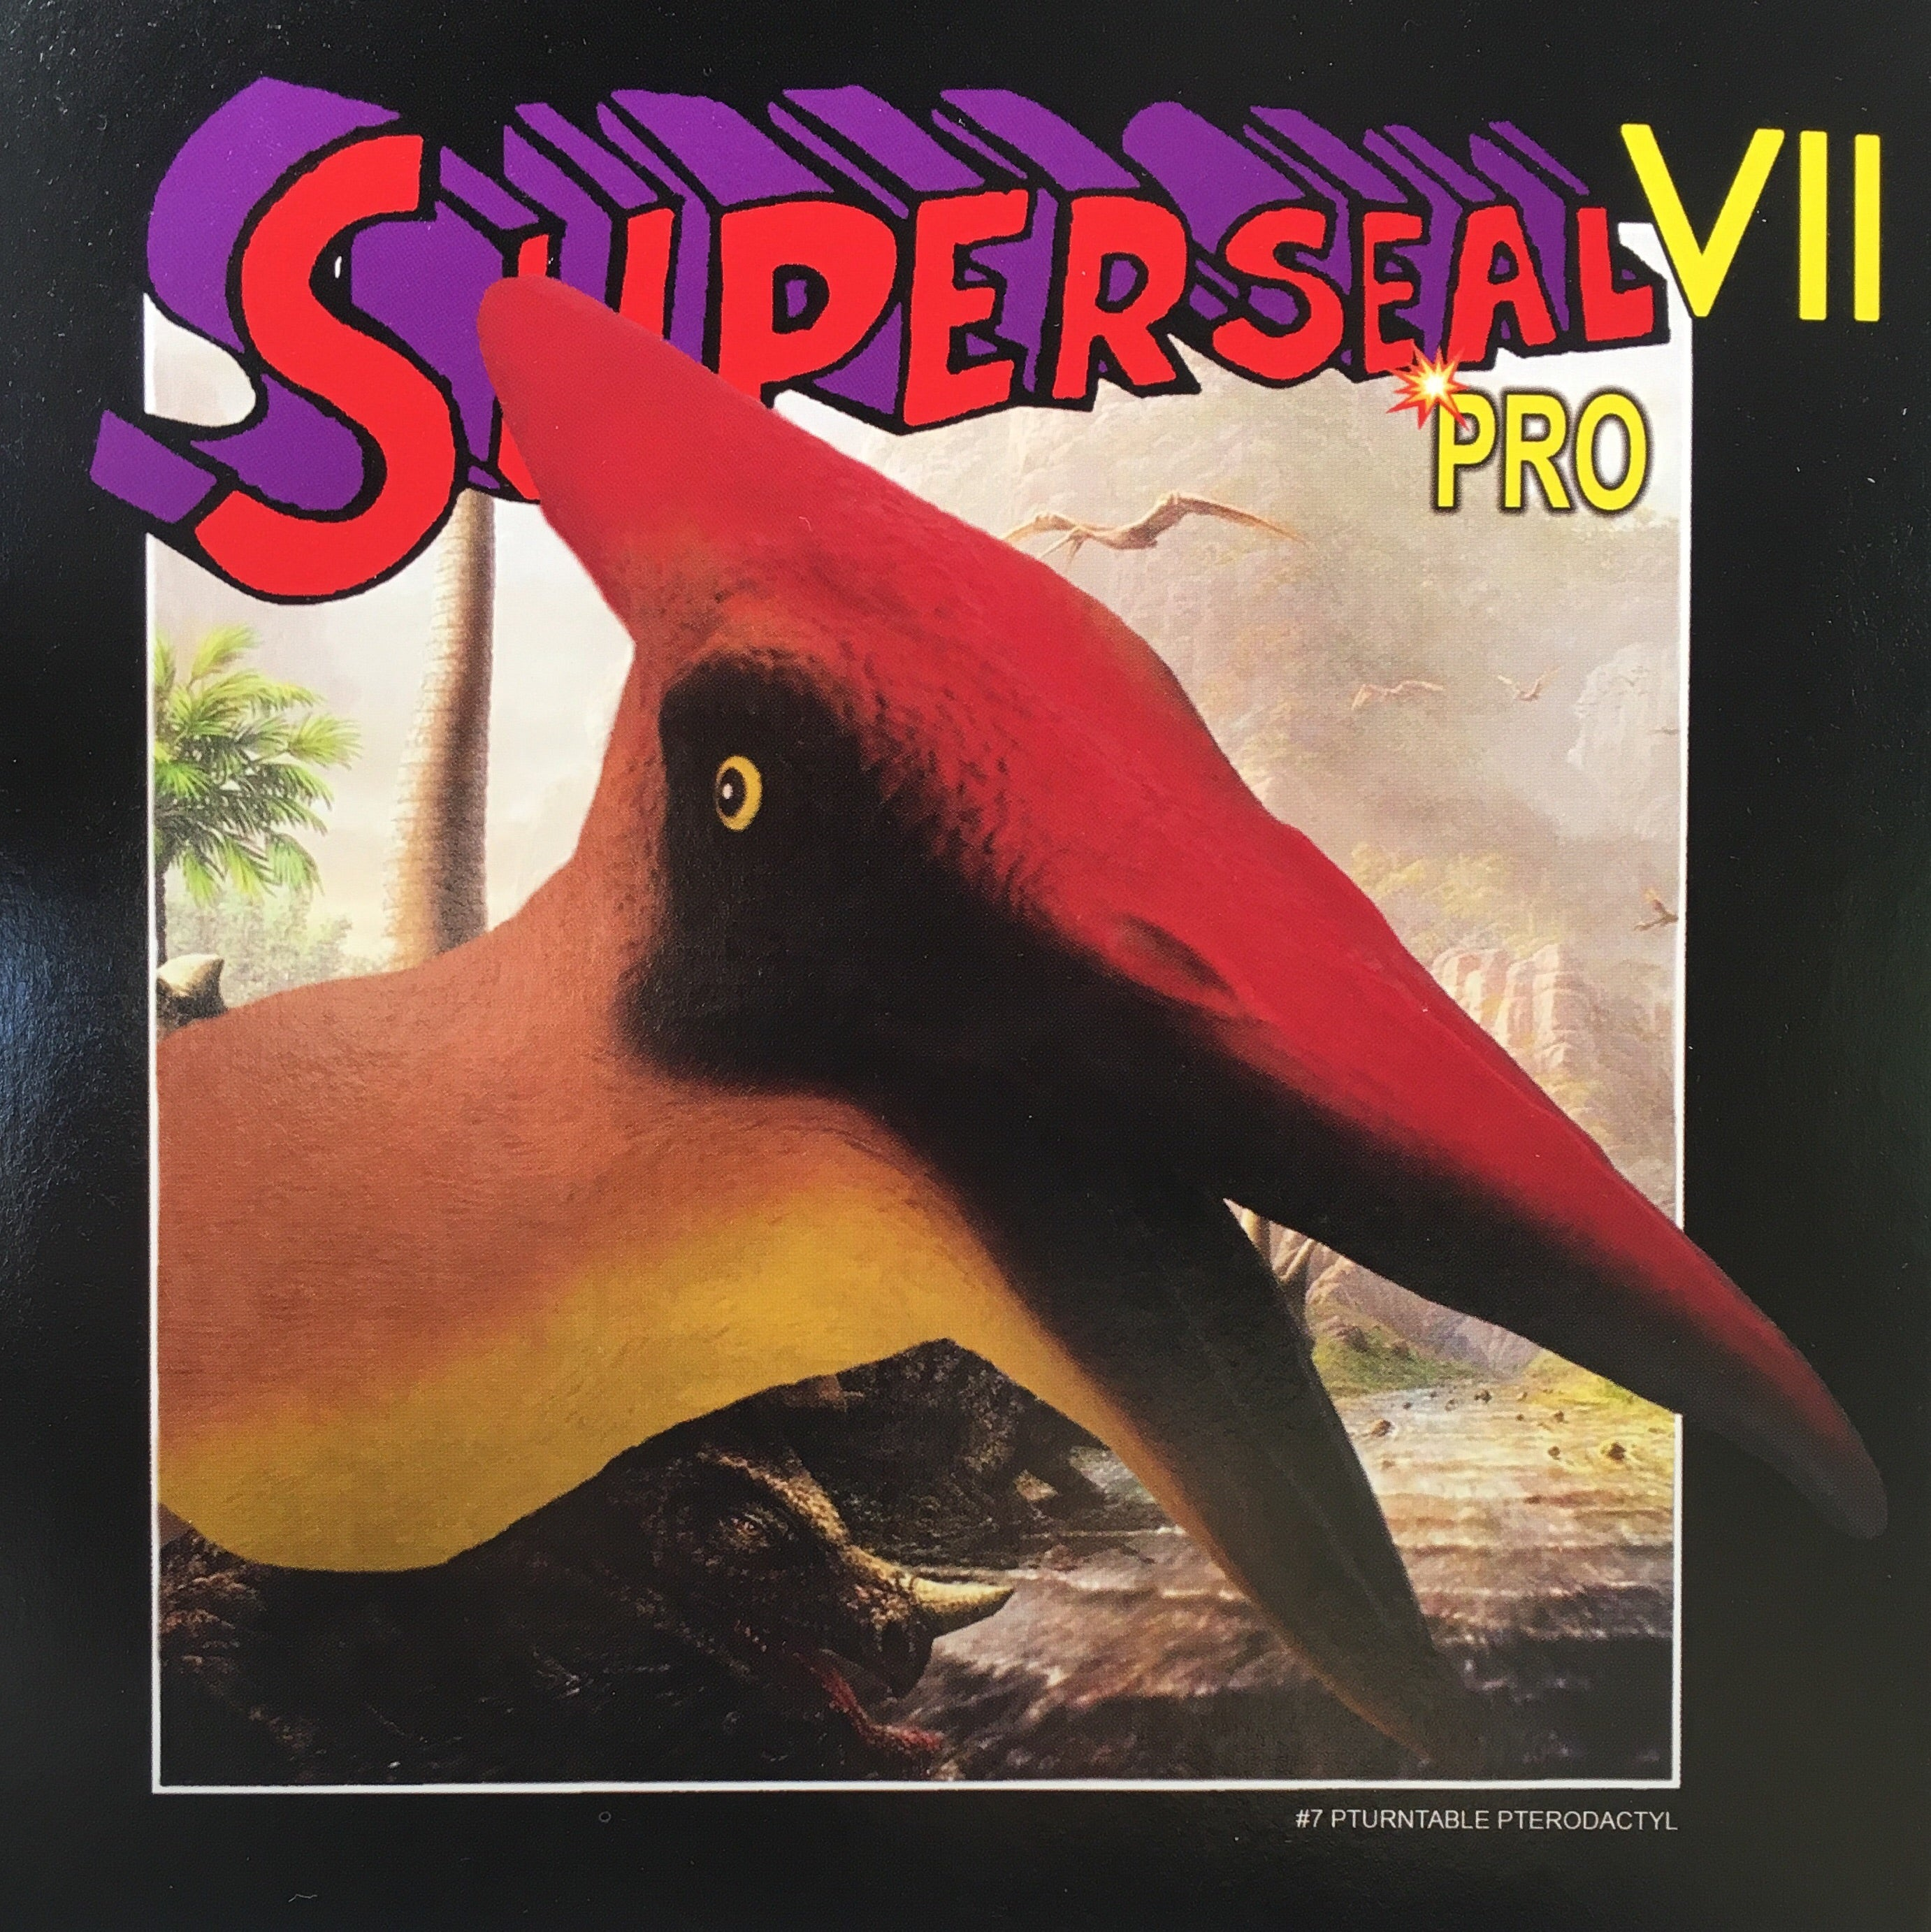 "Superseal VII Pro Part #7 of 7 Pturntable Pterodactyl 7"" L. wing Neon vinyl (Low quantity!)"